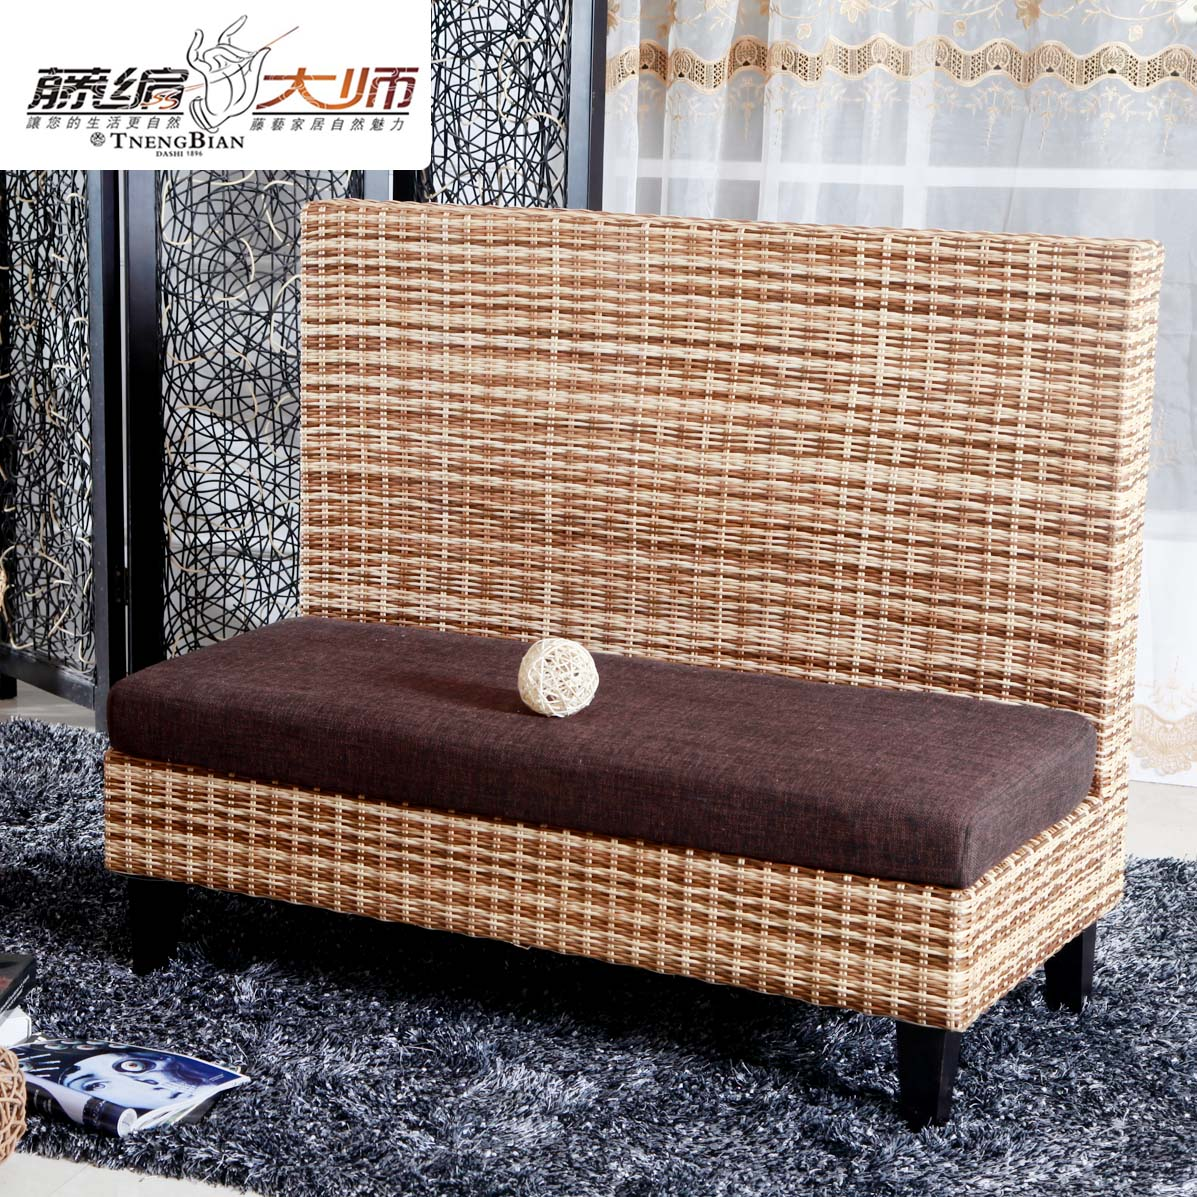 Can come to the amount of size hotel made rattan deck restaurant deck sofa ktv club cafe cafe deck